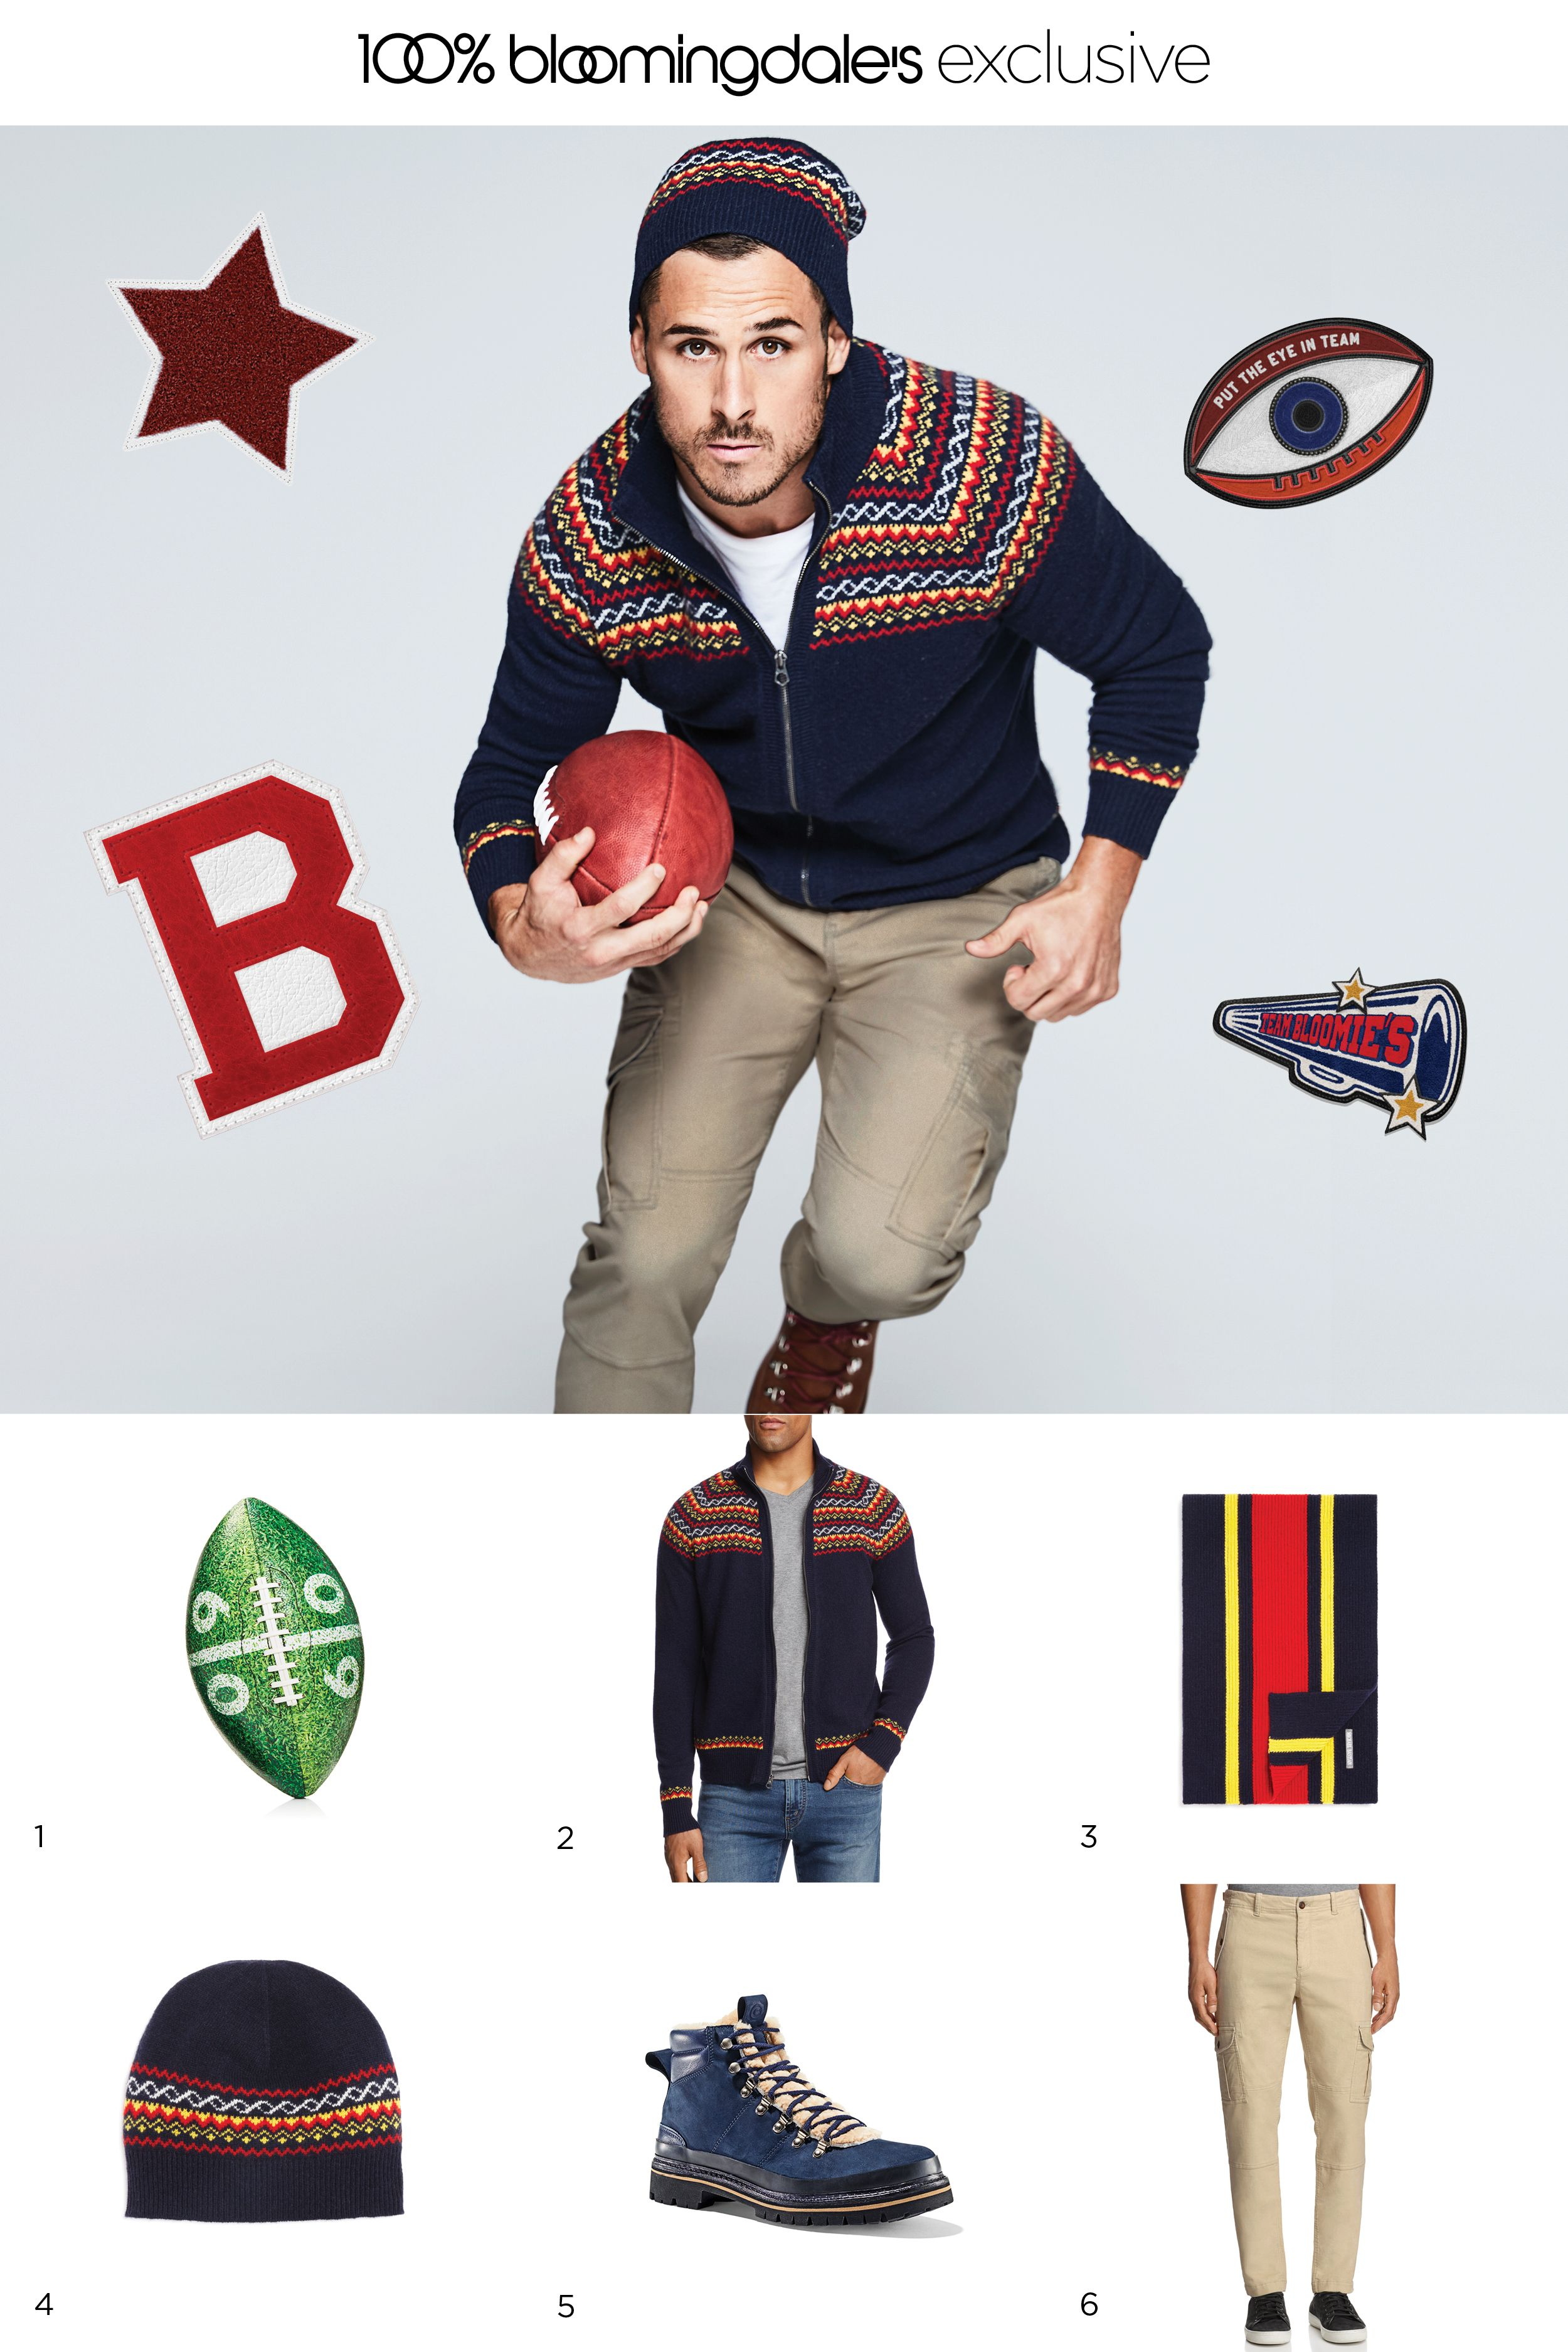 Three cheers! Our new season of designer exclusives has arrived. Shop now! 1. Football, Sprayground; 2. Sweater, Michael Bastian; 3. Scarf, Michael Bastian; 4. Hat, Michael Bastian; 5. Boots, Greats; 6. Pants, Michael Bastian